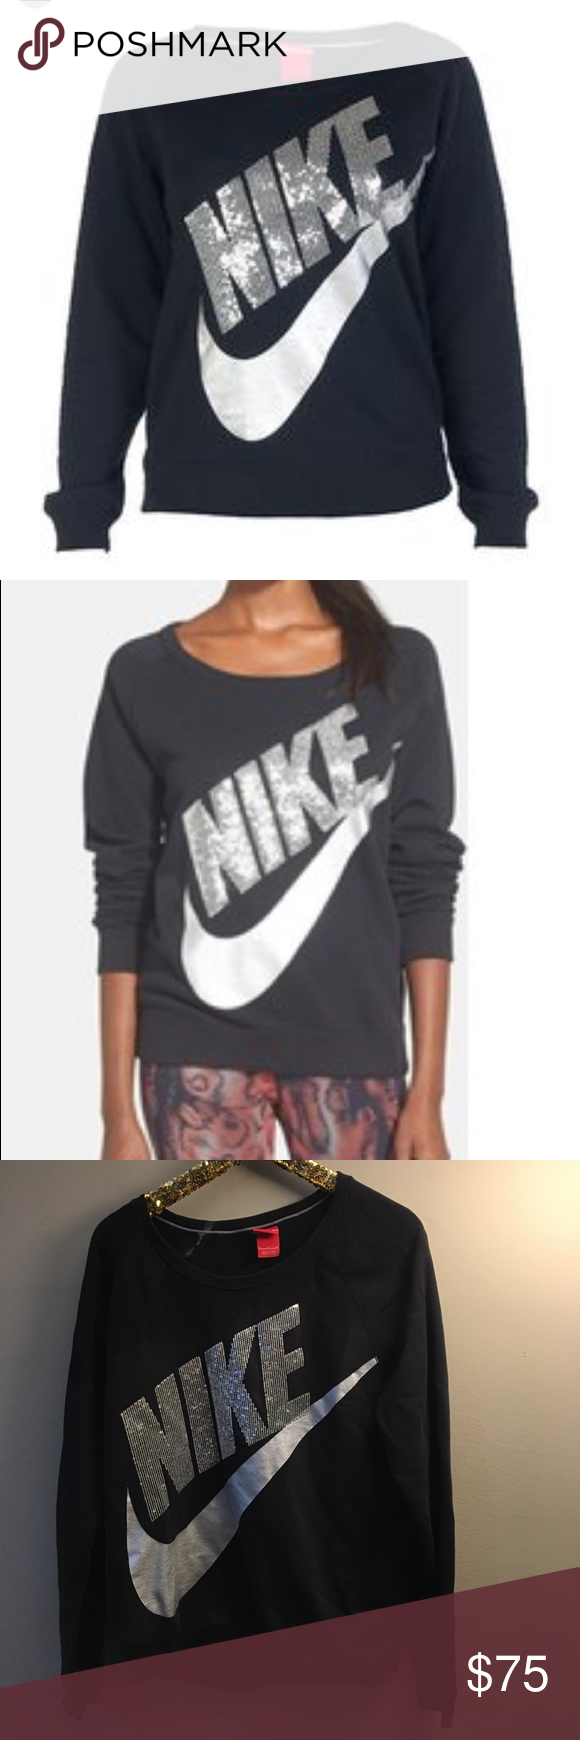 db1632032df8 Nike Rally Sequined Sweatshirt A glittering Nike logo and shiny silver  Swoosh add serious street cred to this relaxed-fit sweatshirt.